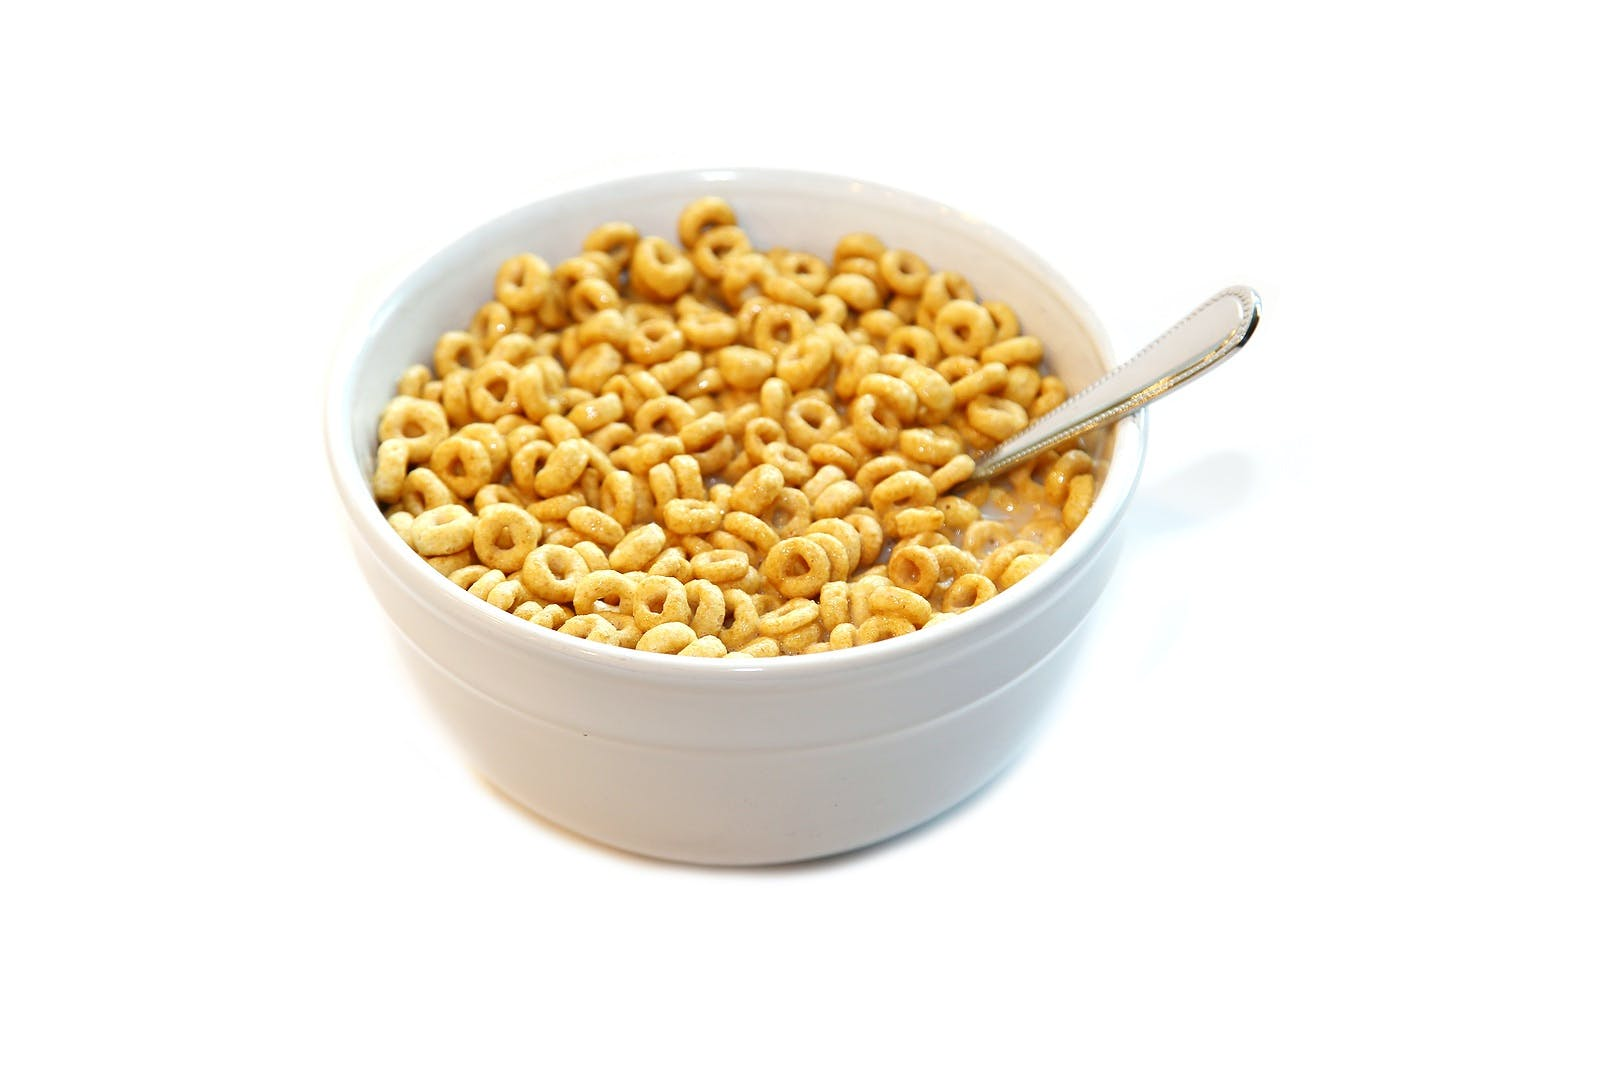 Cheerios. Cereal in a bowl of milk. Breakfast food. Isolated on white. Room for text.